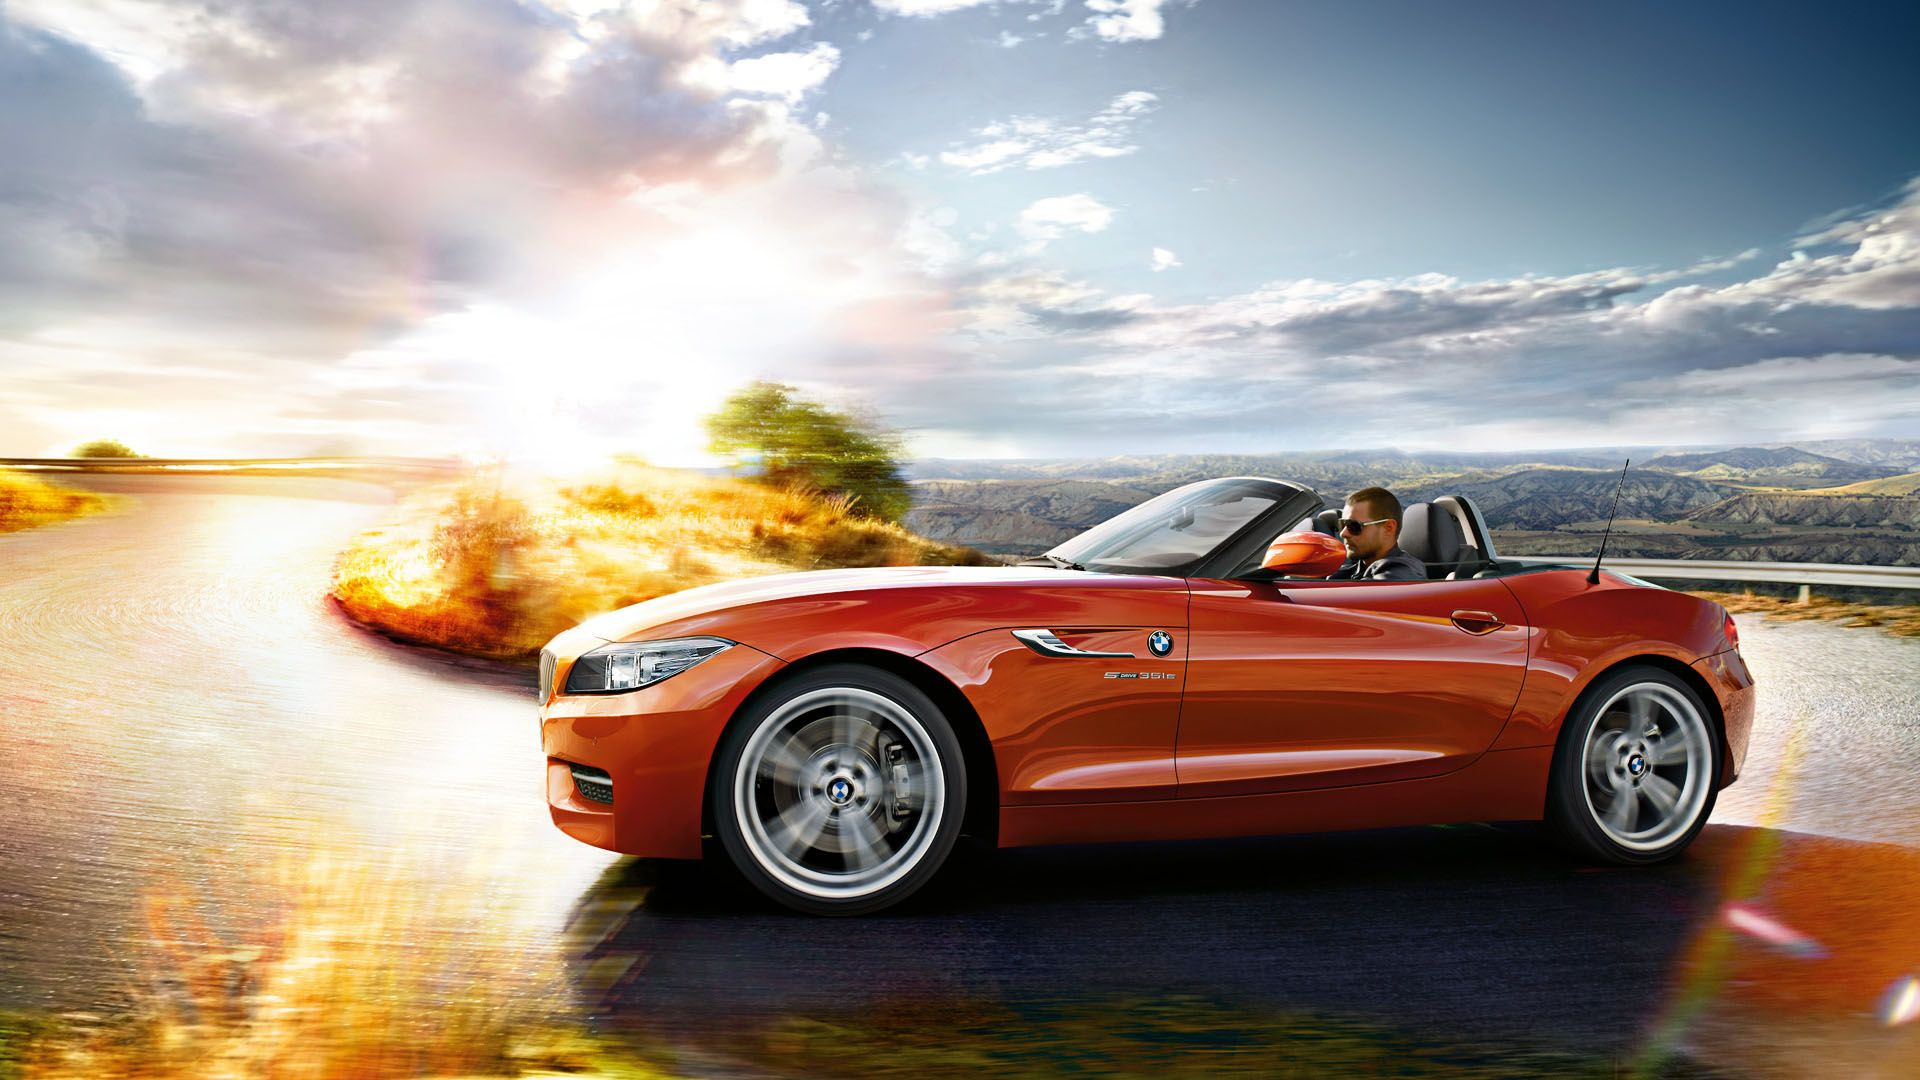 Bmw Z4 Wallpaper Hd Wallpapers Available In Different